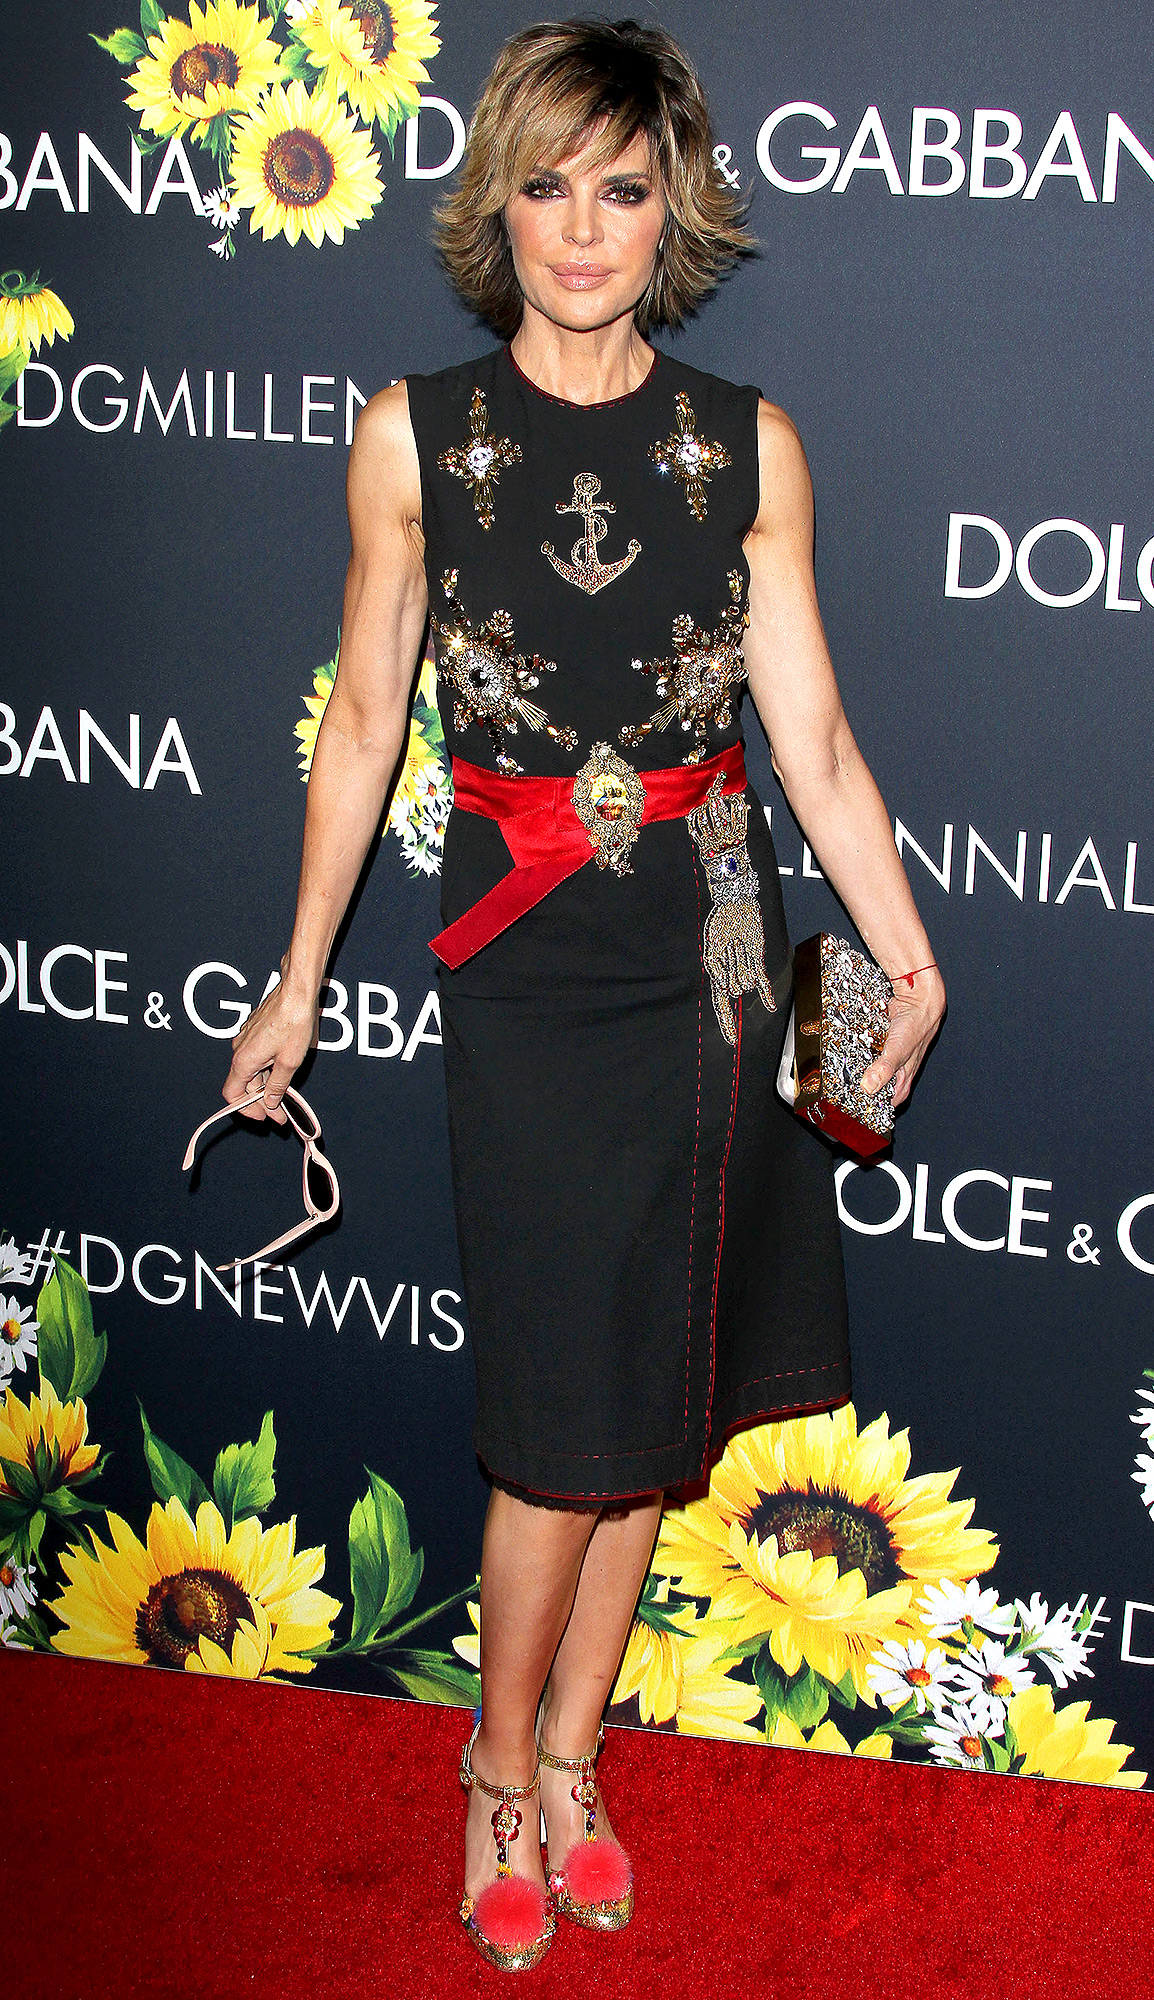 Dolce and Gabbana New Vision and Millennials Party, Los Angeles